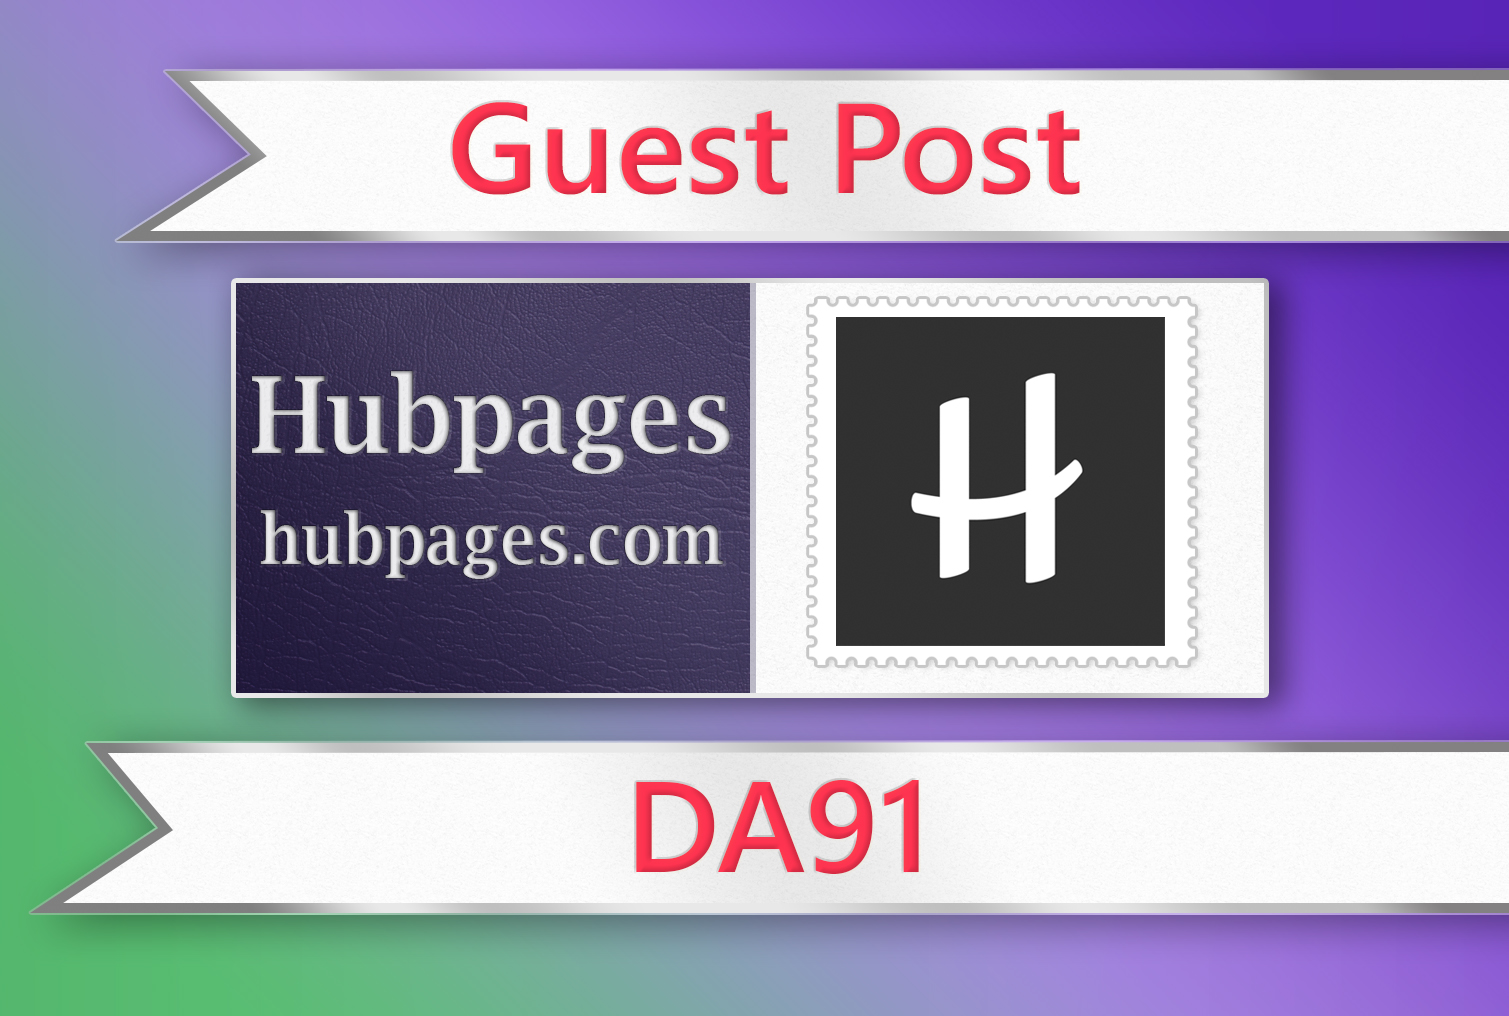 Guest post on Hubpages - DA91